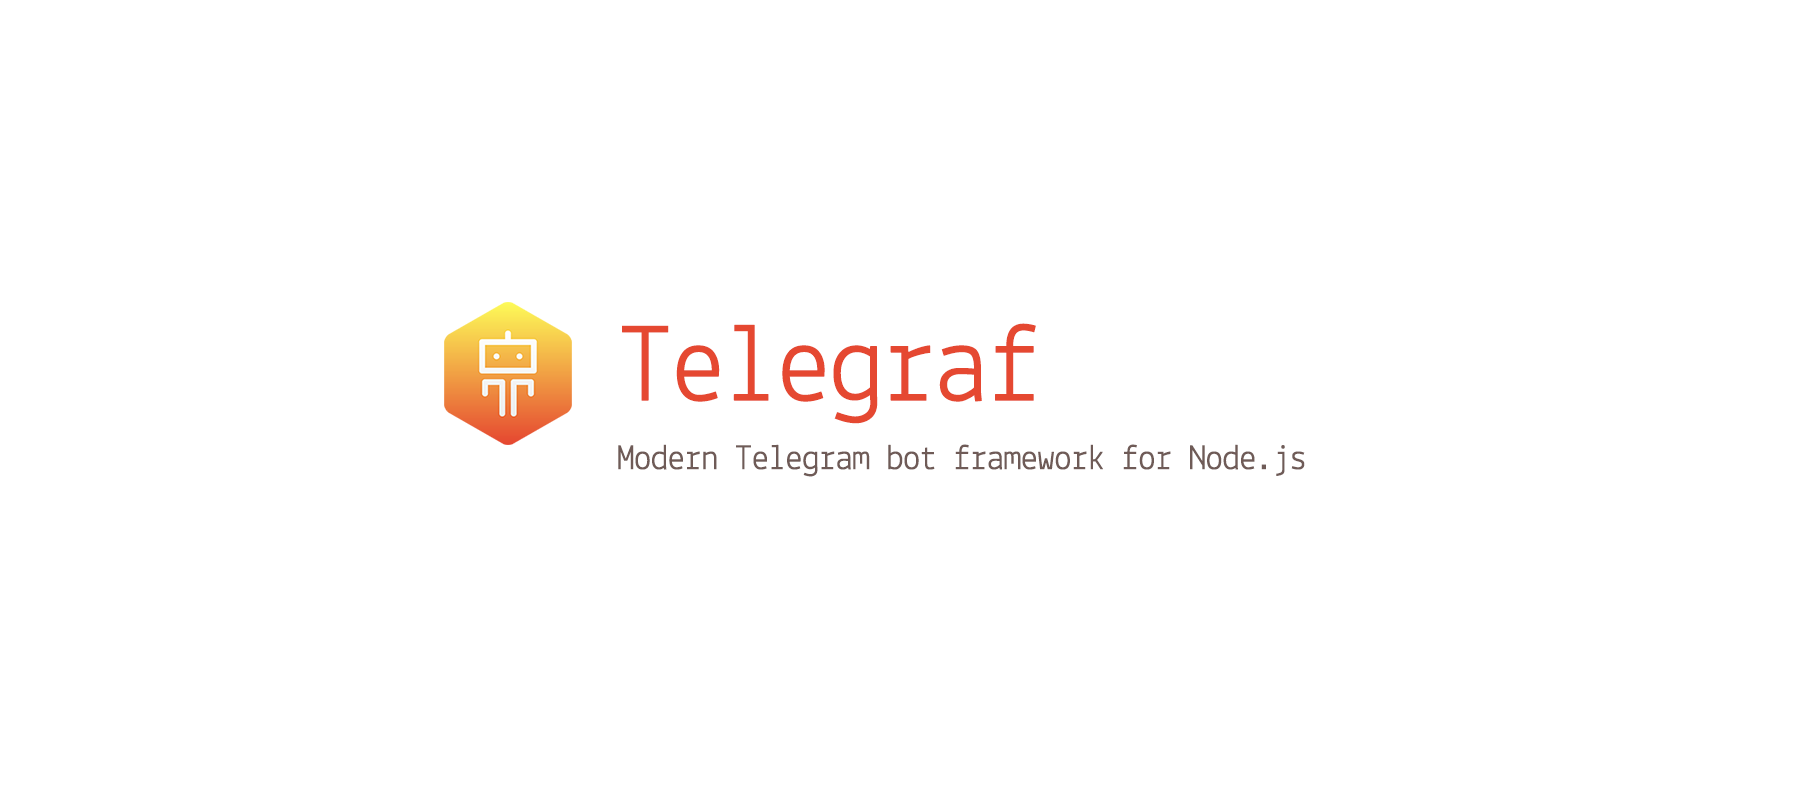 $ npm install telegraf --save